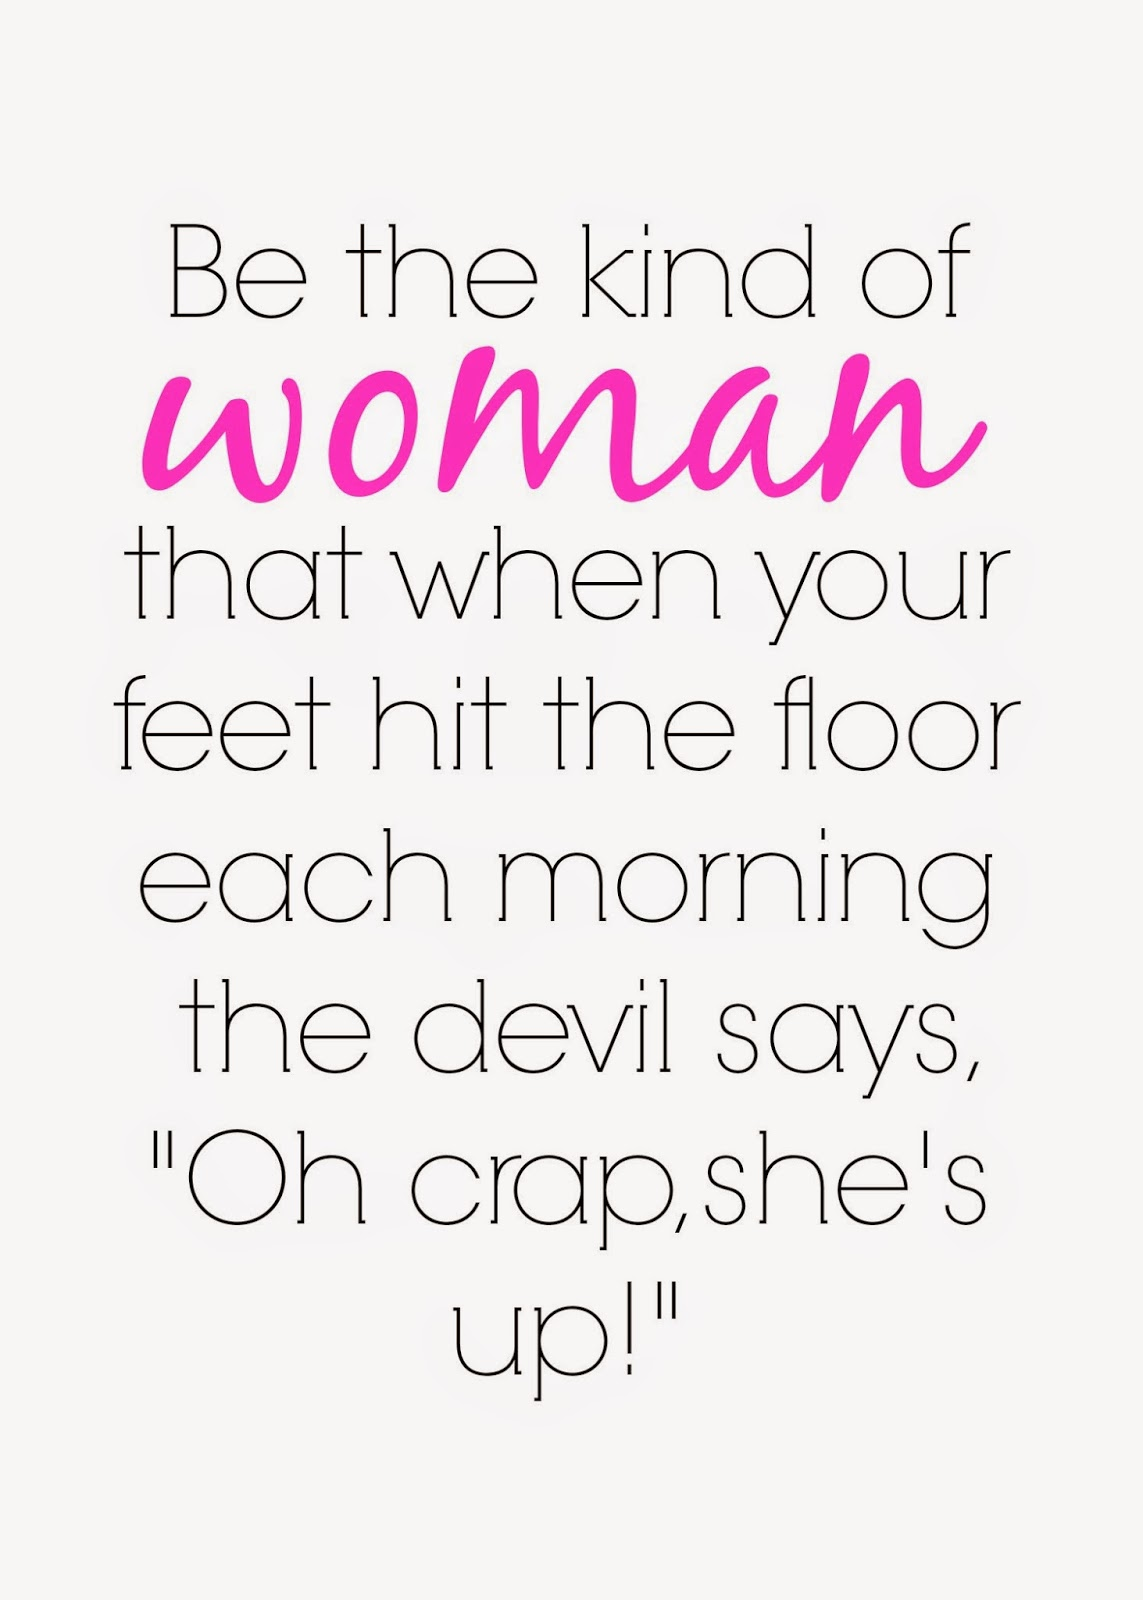 """Be the kind of woman that when your feet hit the floor each morning the devil says,""""Oh crap she's up!"""""""